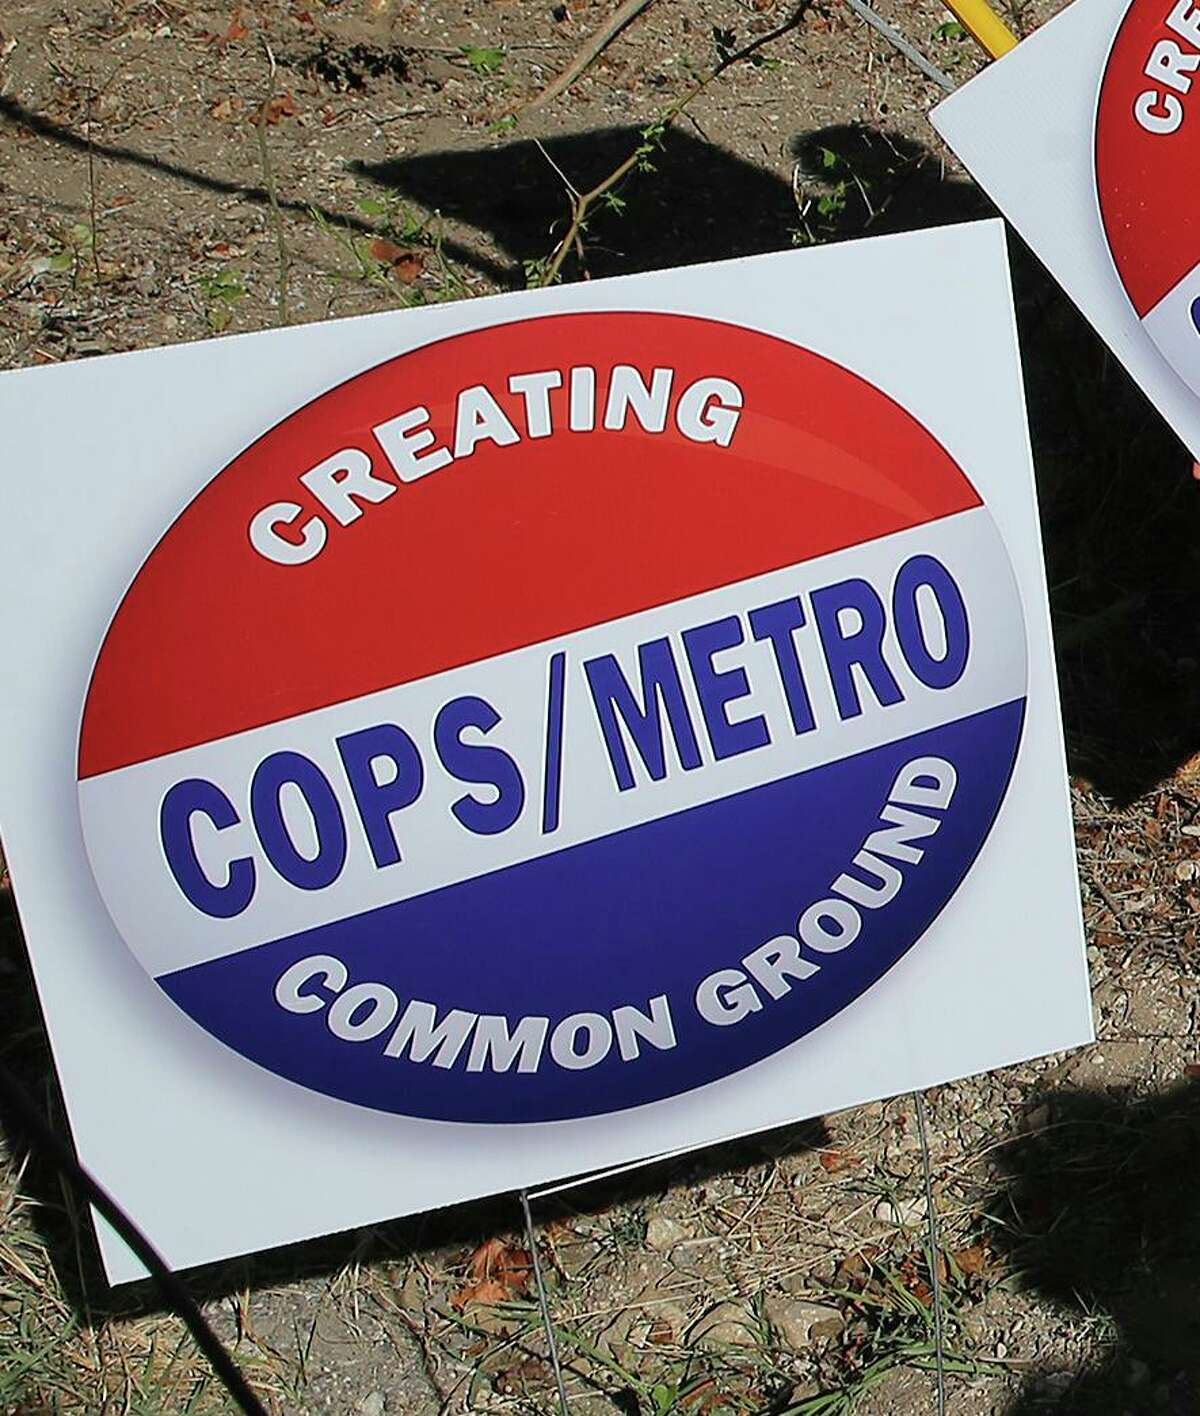 COPS/Metro leaders worry the city hasn't done enough to prepare for the next stage of its training efforts - Ready to Work, the $200 million program backed by a sales tax that will also help residents enroll in college degree programs. Already, the program's rollout has been pushed back a month from September to October.